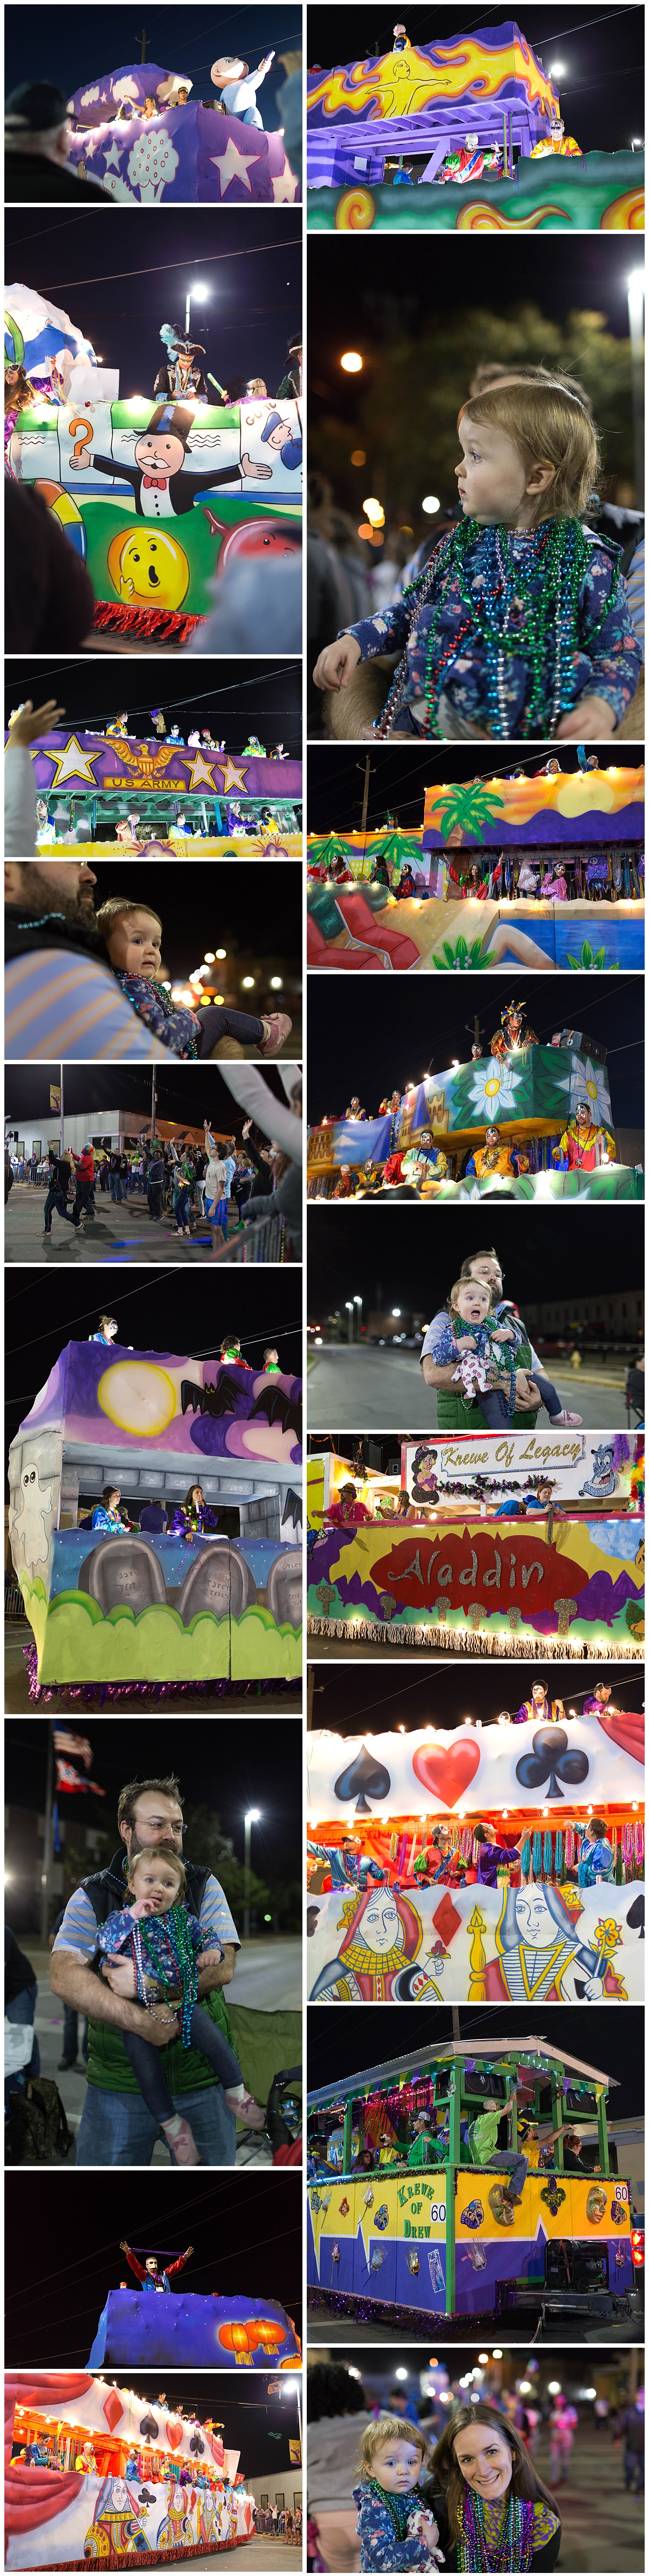 Krewe of Neptune Mardi Gras parade in Biloxi, Mississippi